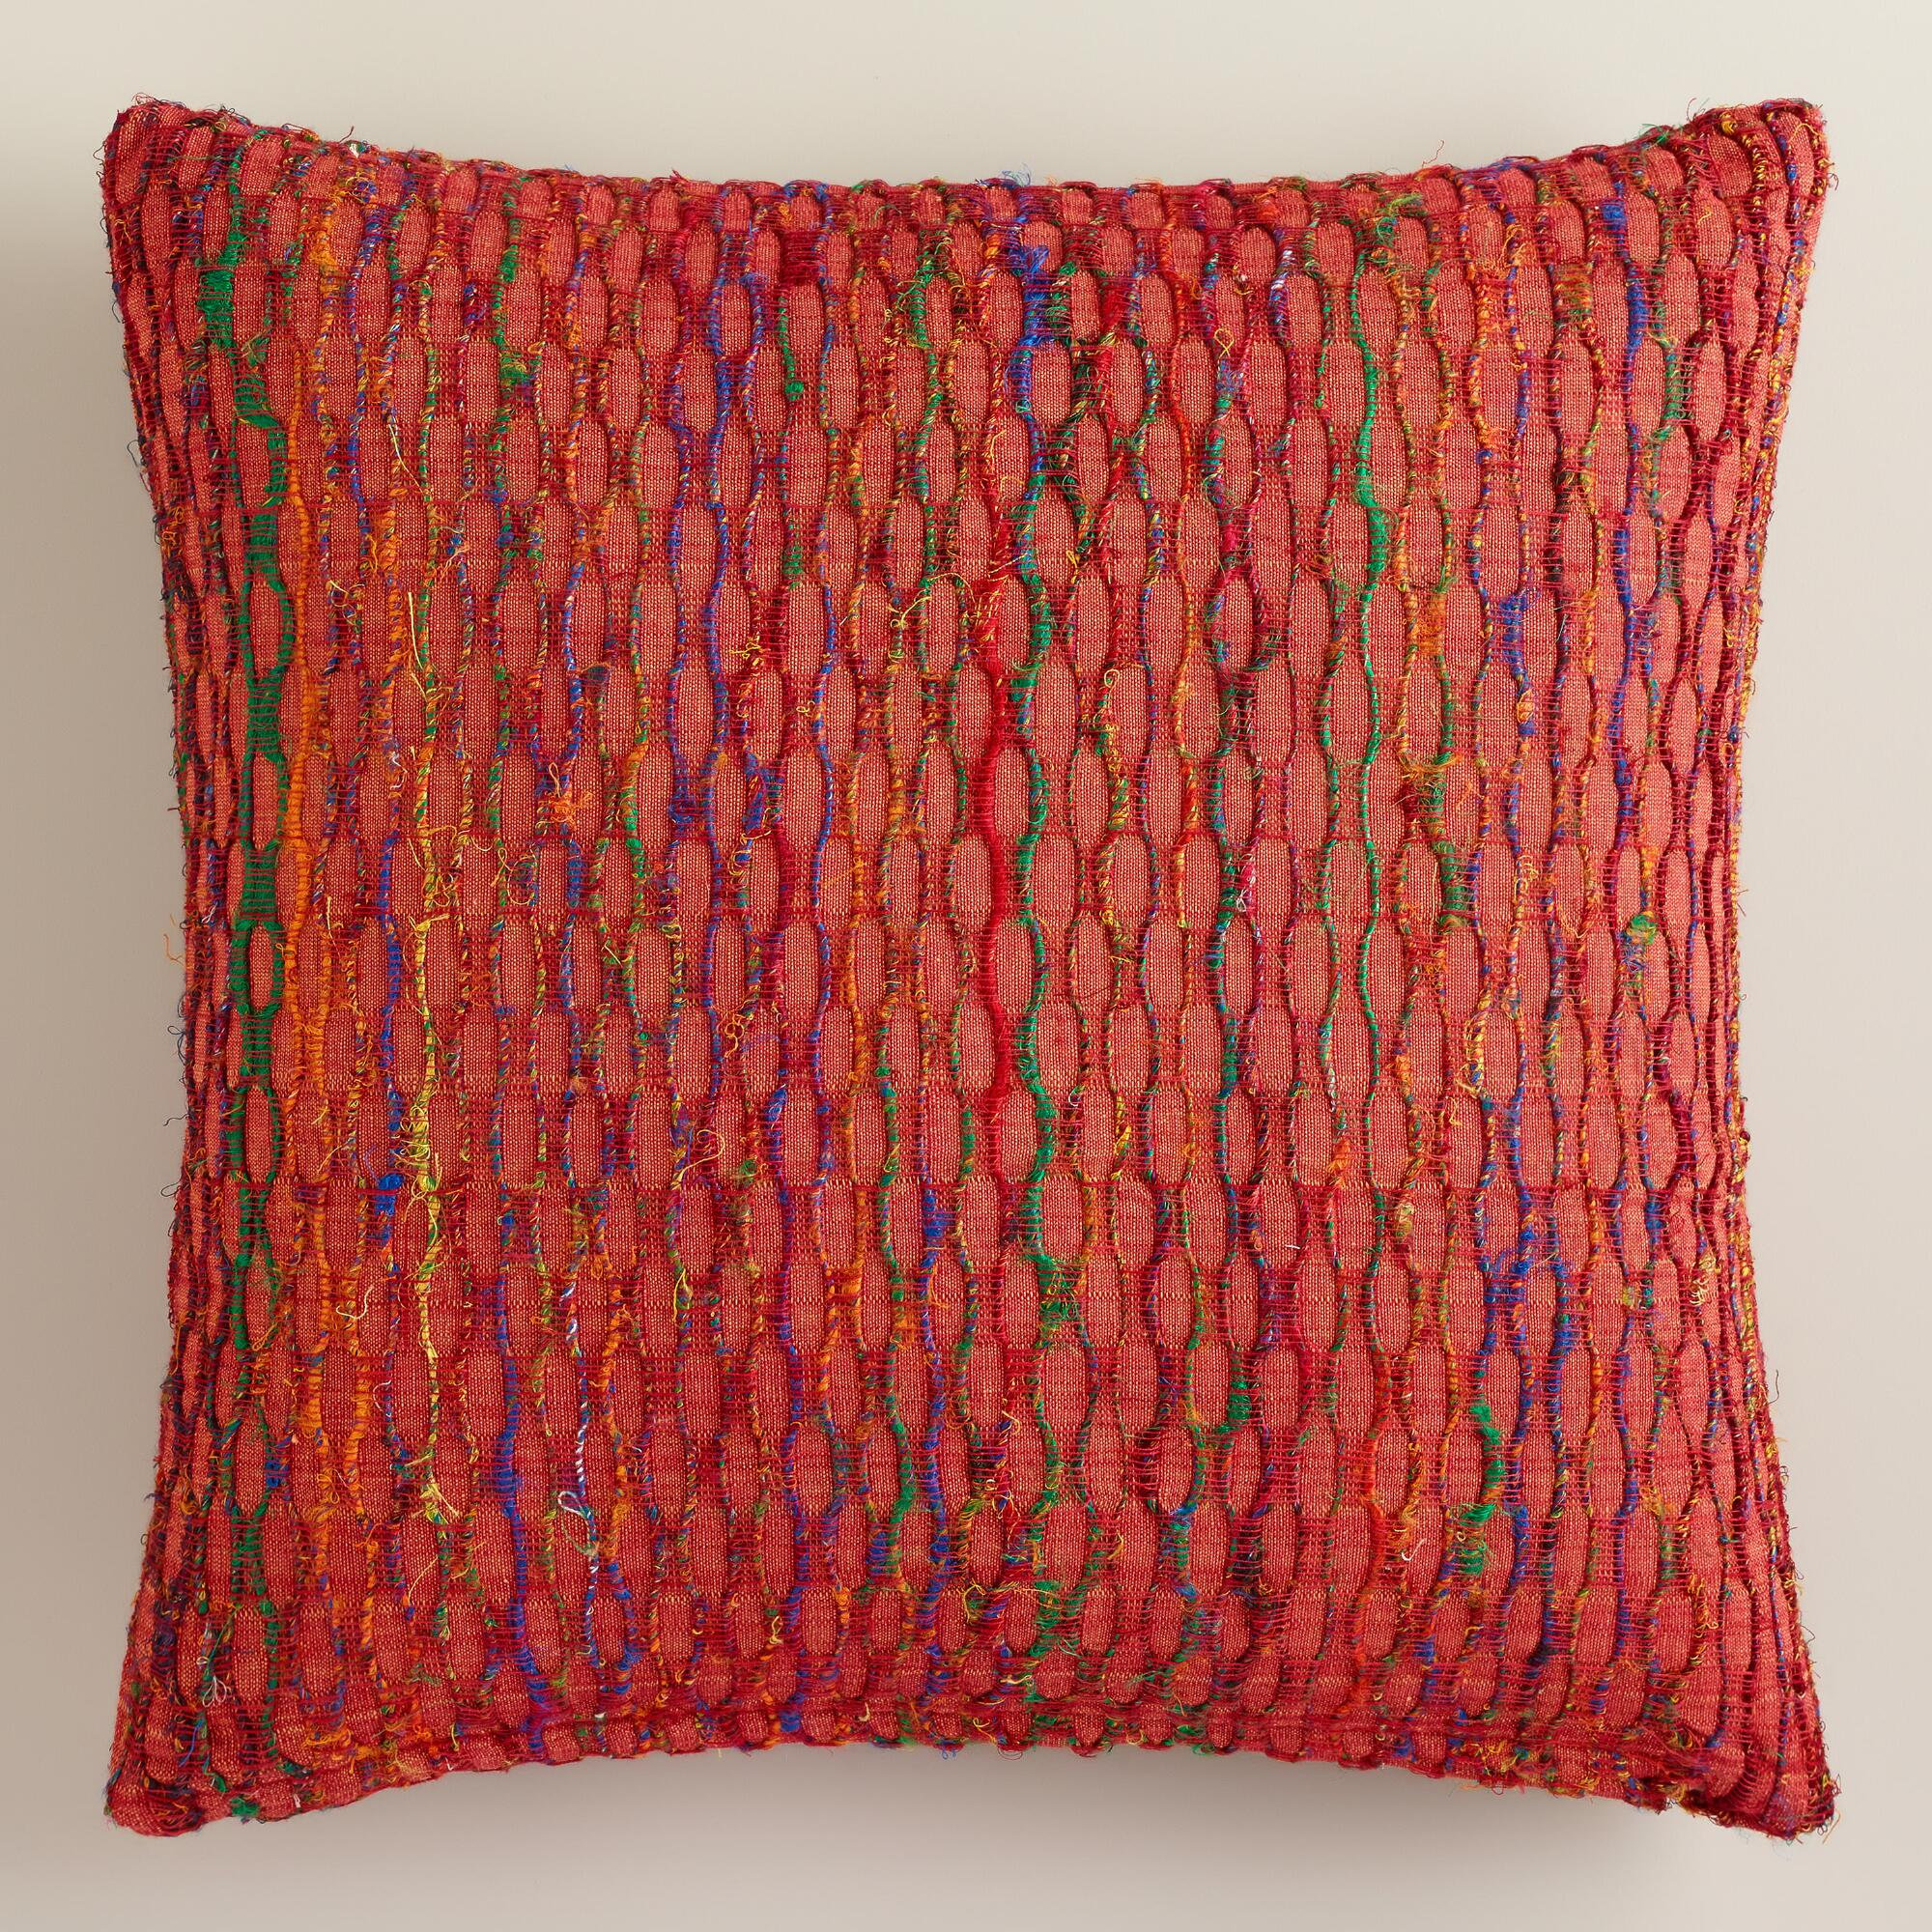 Throw Pillows With Orange : Burnt Orange Honeycomb Throw Pillow World Market